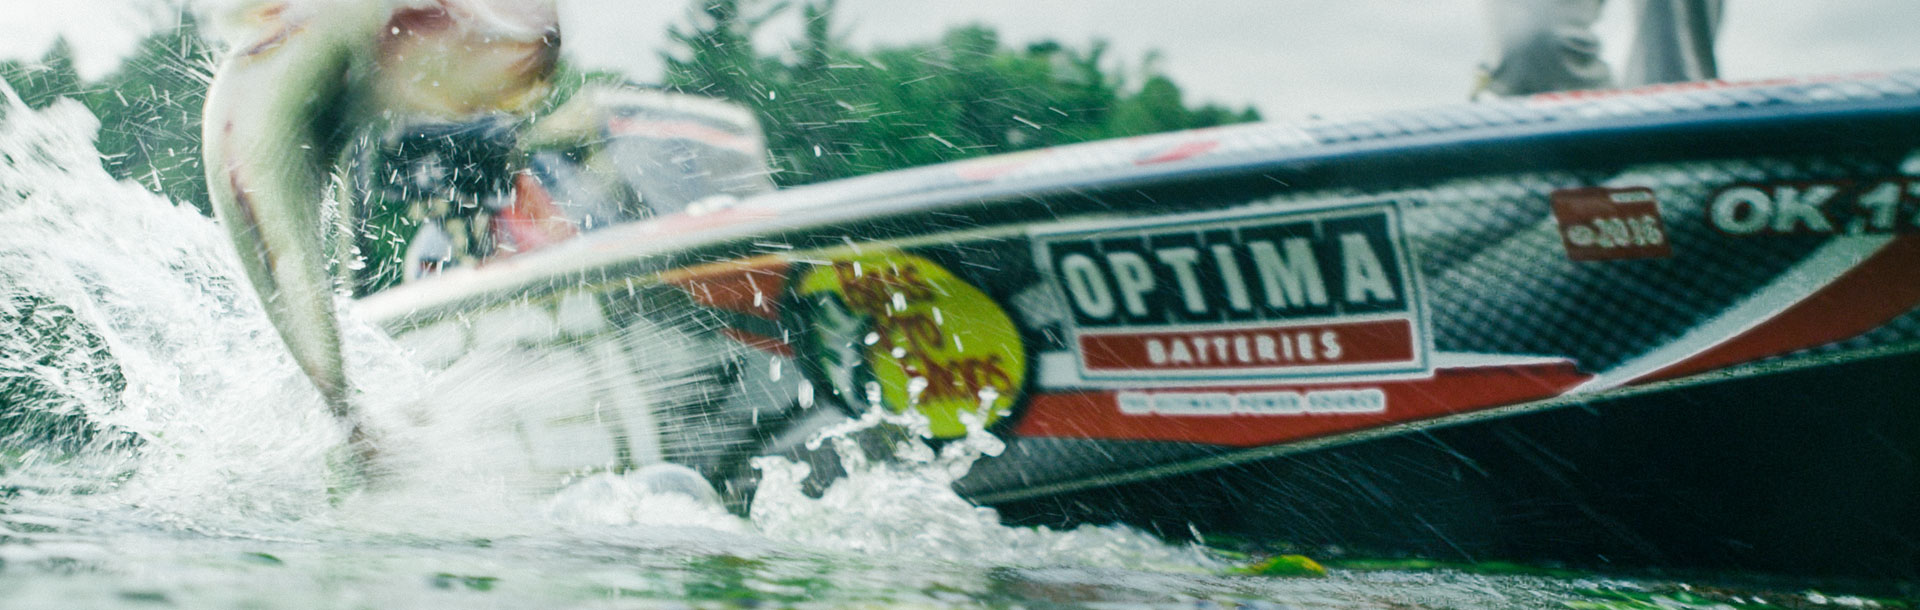 Fishing boat sponsored by OPTIMA Batteries